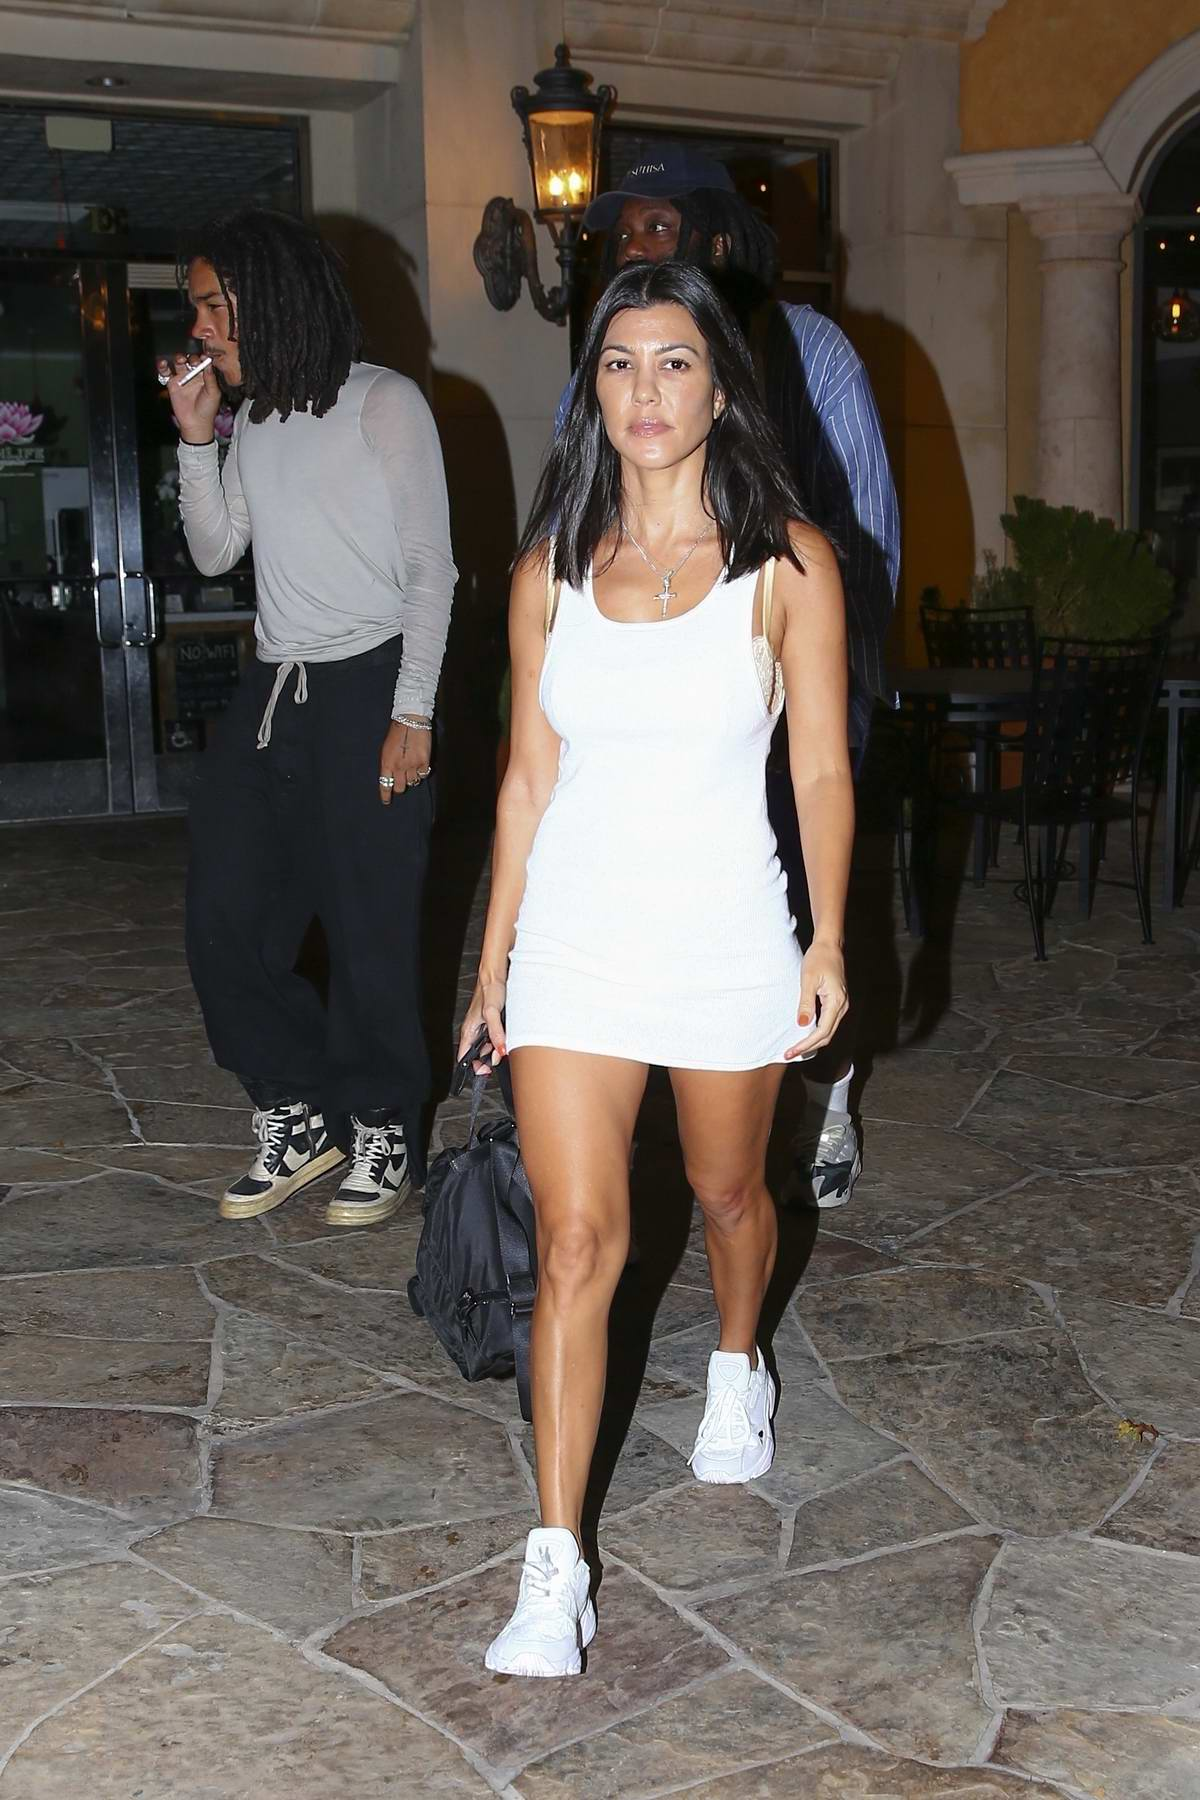 Kourtney Kardashian wore a short white dress as she leaves Sugarfish during a night out with Luka Sabbat in Los Angeles